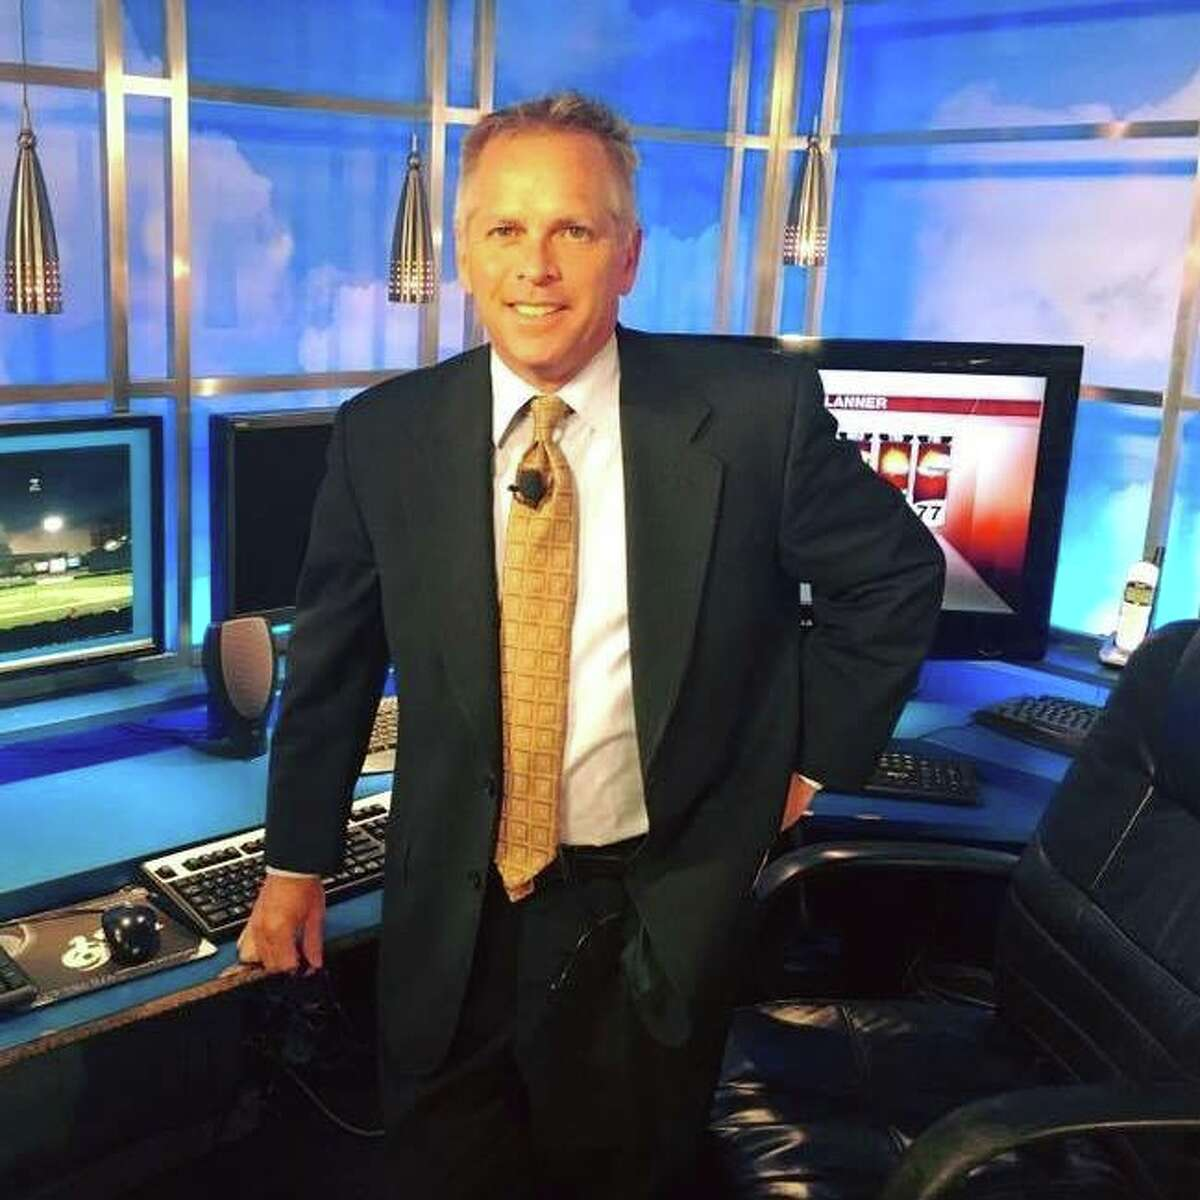 Neal Estano is the morning meteorologist at WNYT NewsChannel13.